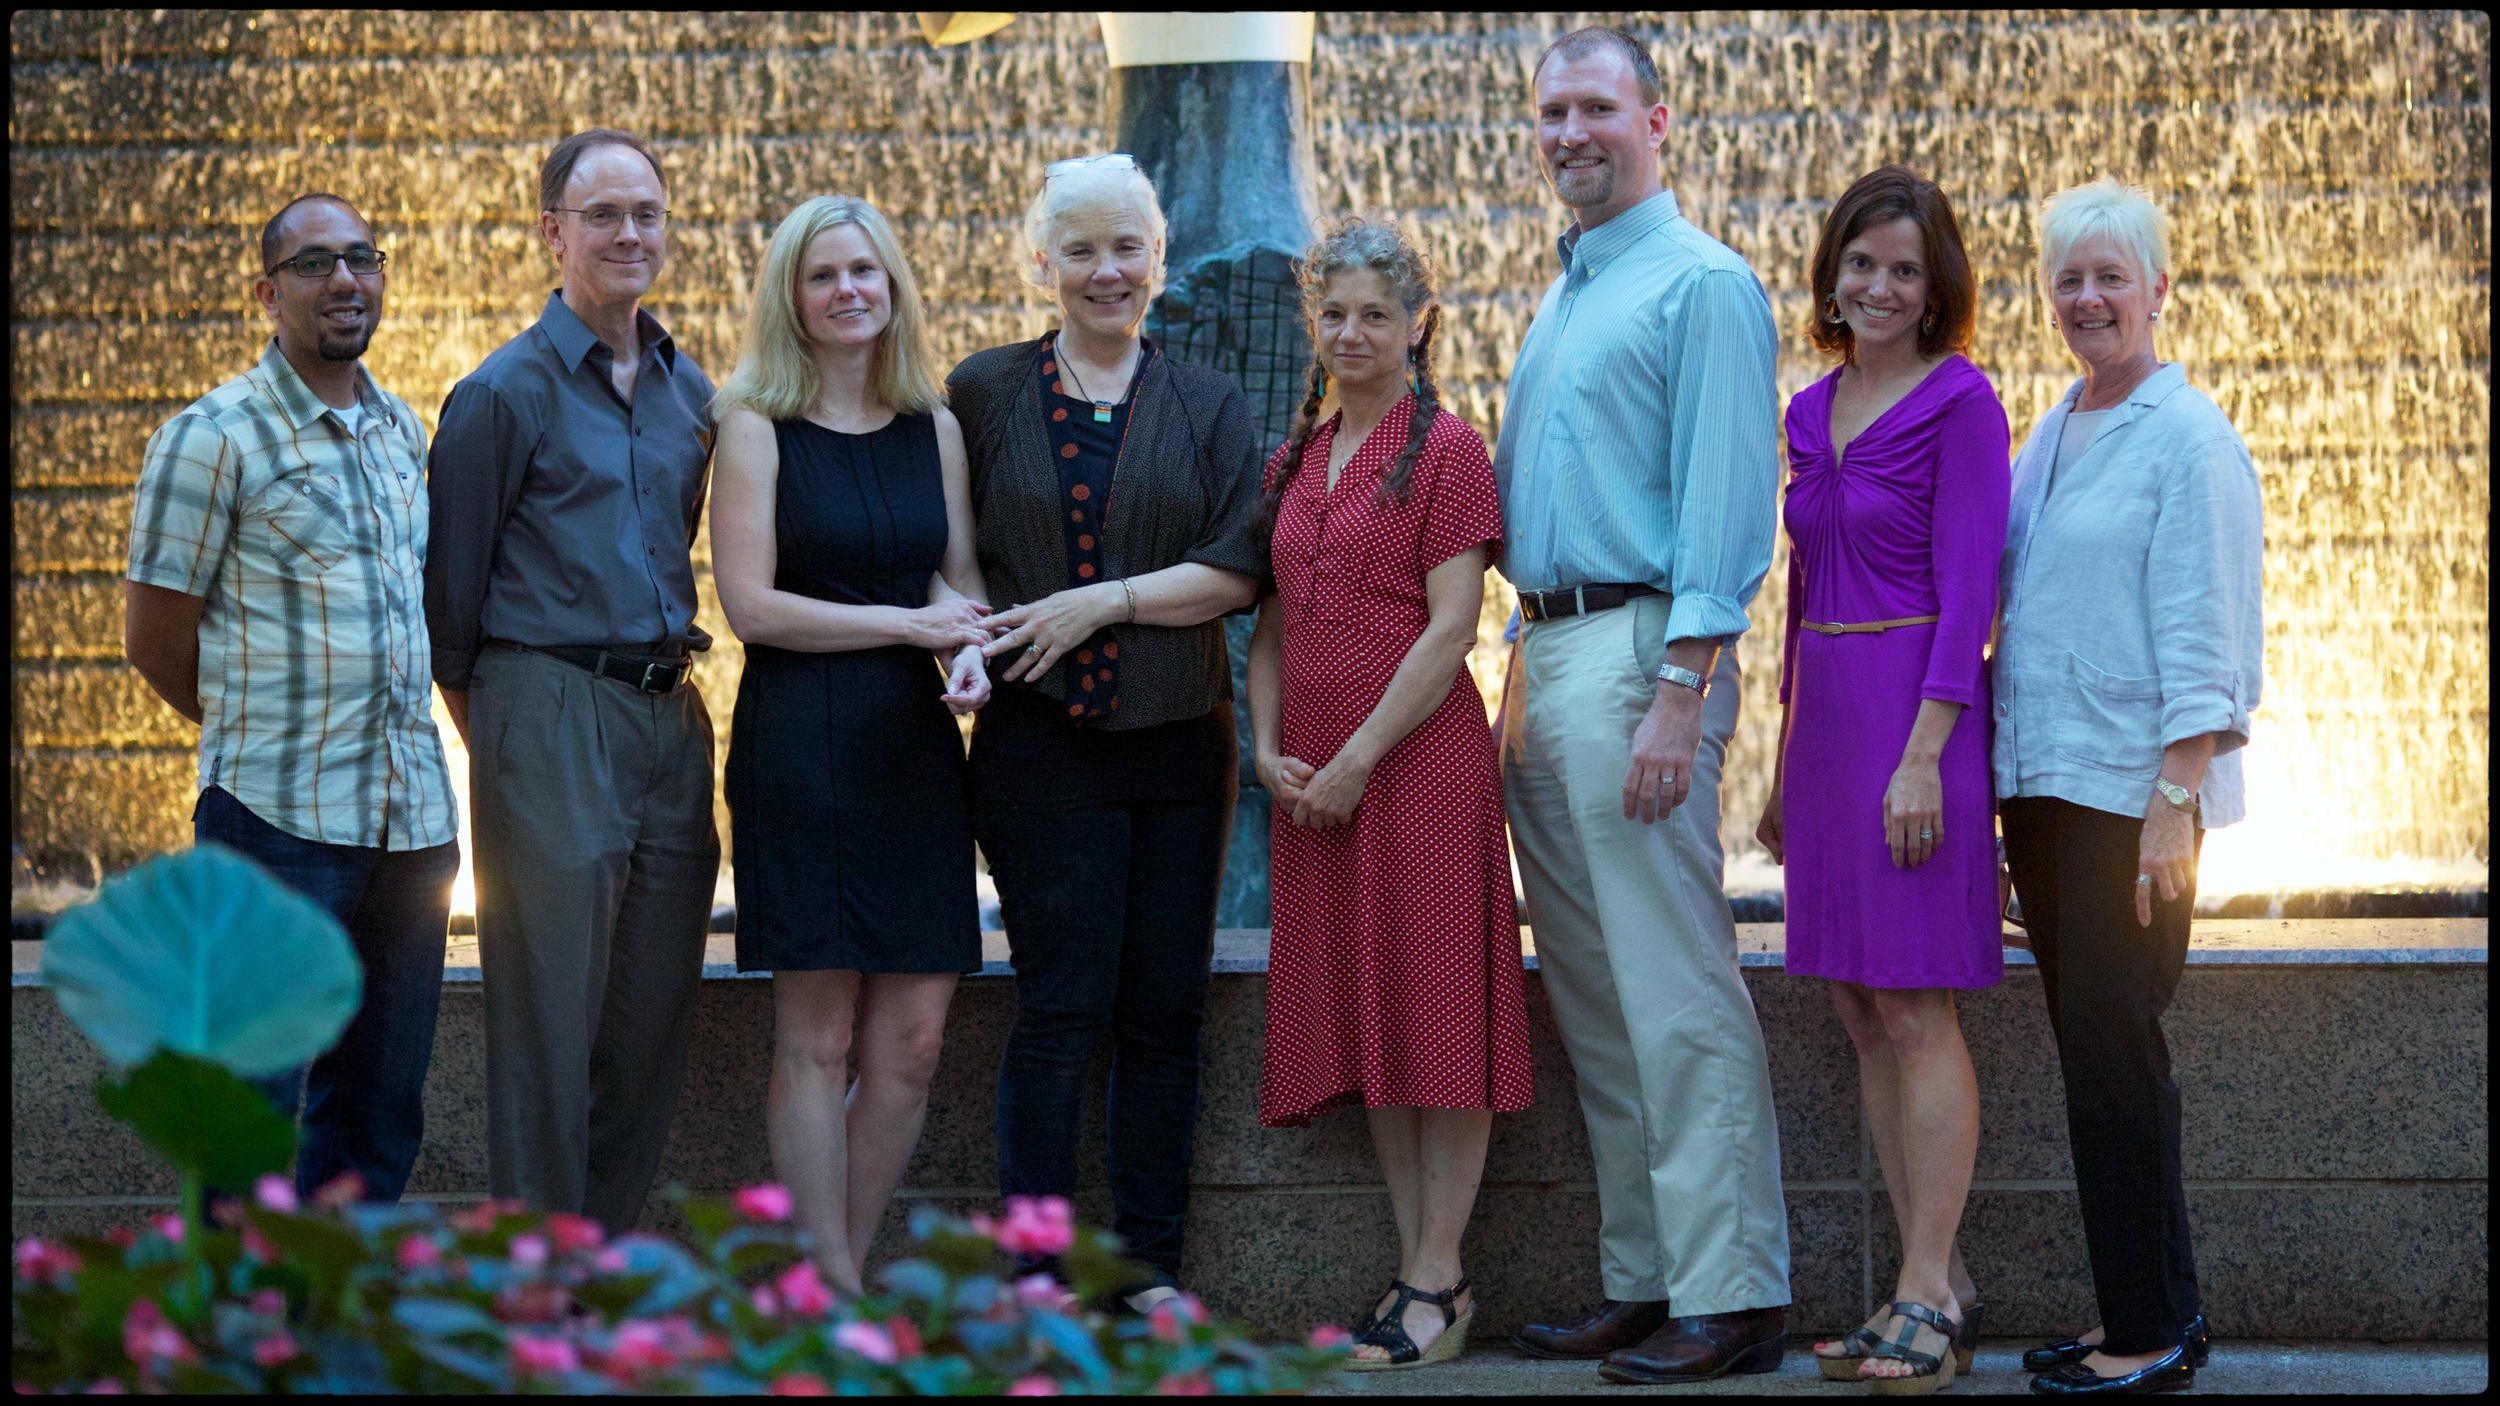 Original TADBiT Leadership Team, 2013-2019. Left to Right: Sammy Banawan, John Mader, Jill Compton, Meggan Moorhead, Norma Safransky, Eric Gadol, Martha Golden, Noreen Esposito